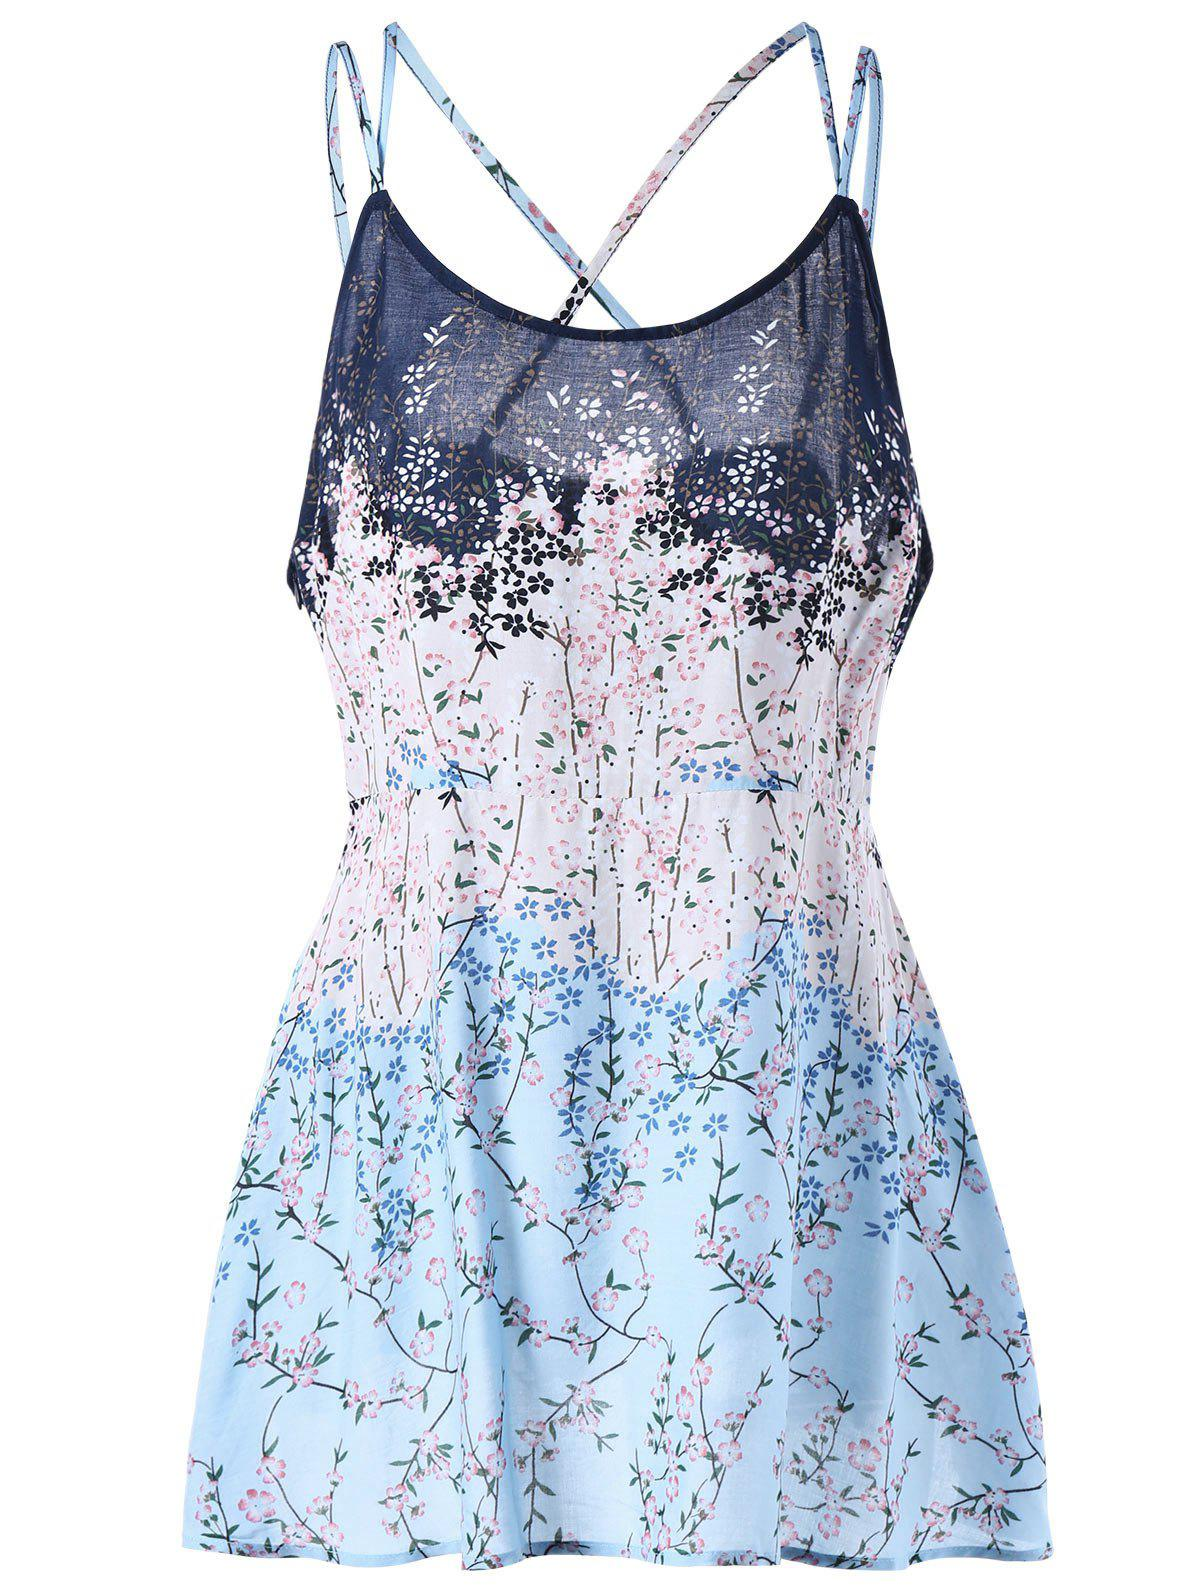 Discount Plus Size Floral Print Lattice Camisole